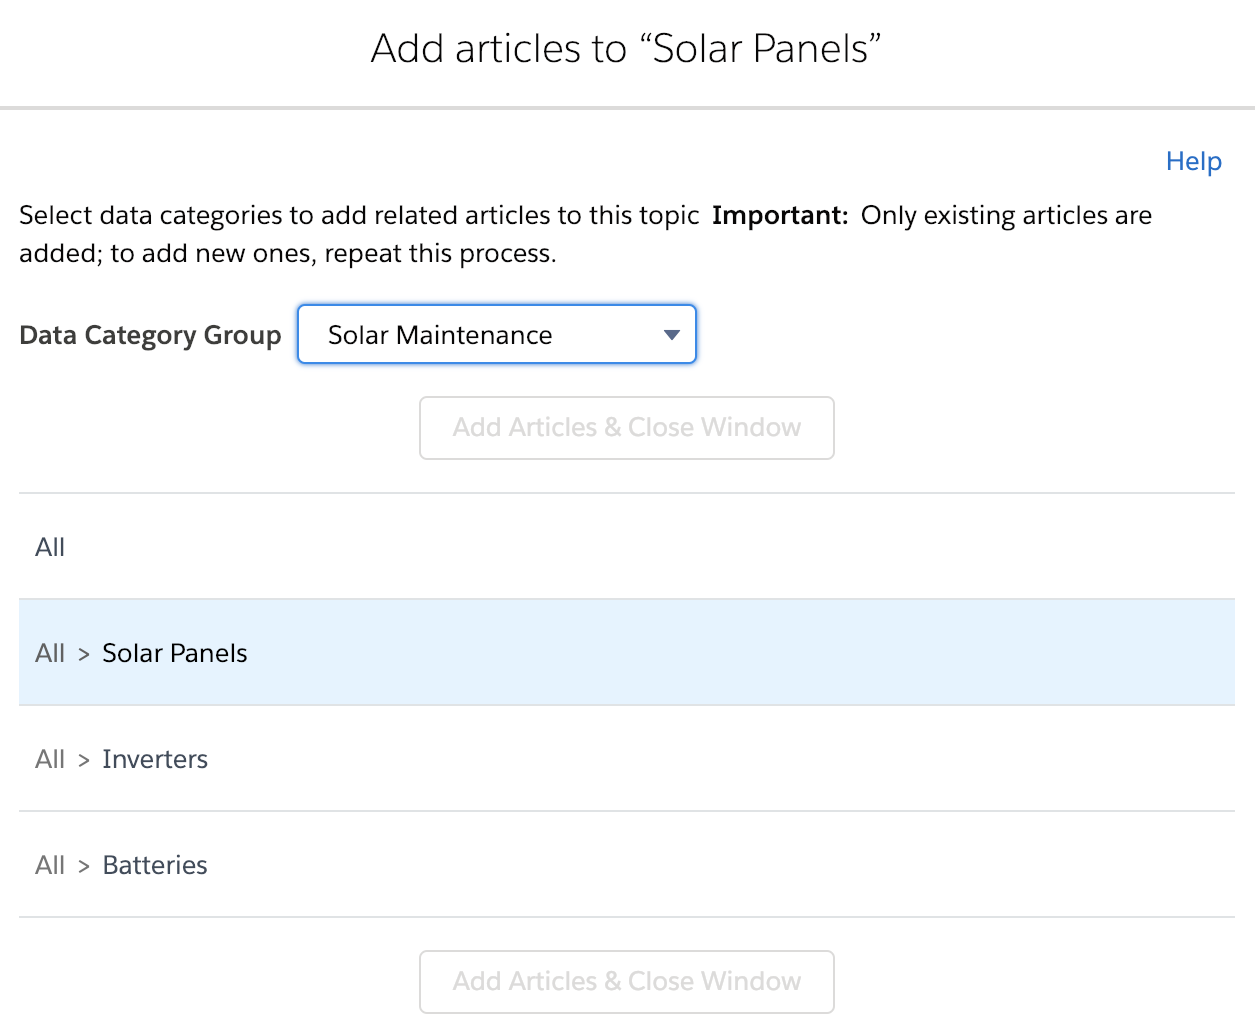 Add articles to Solar Panels screen with All > Solar Panels highlighted.